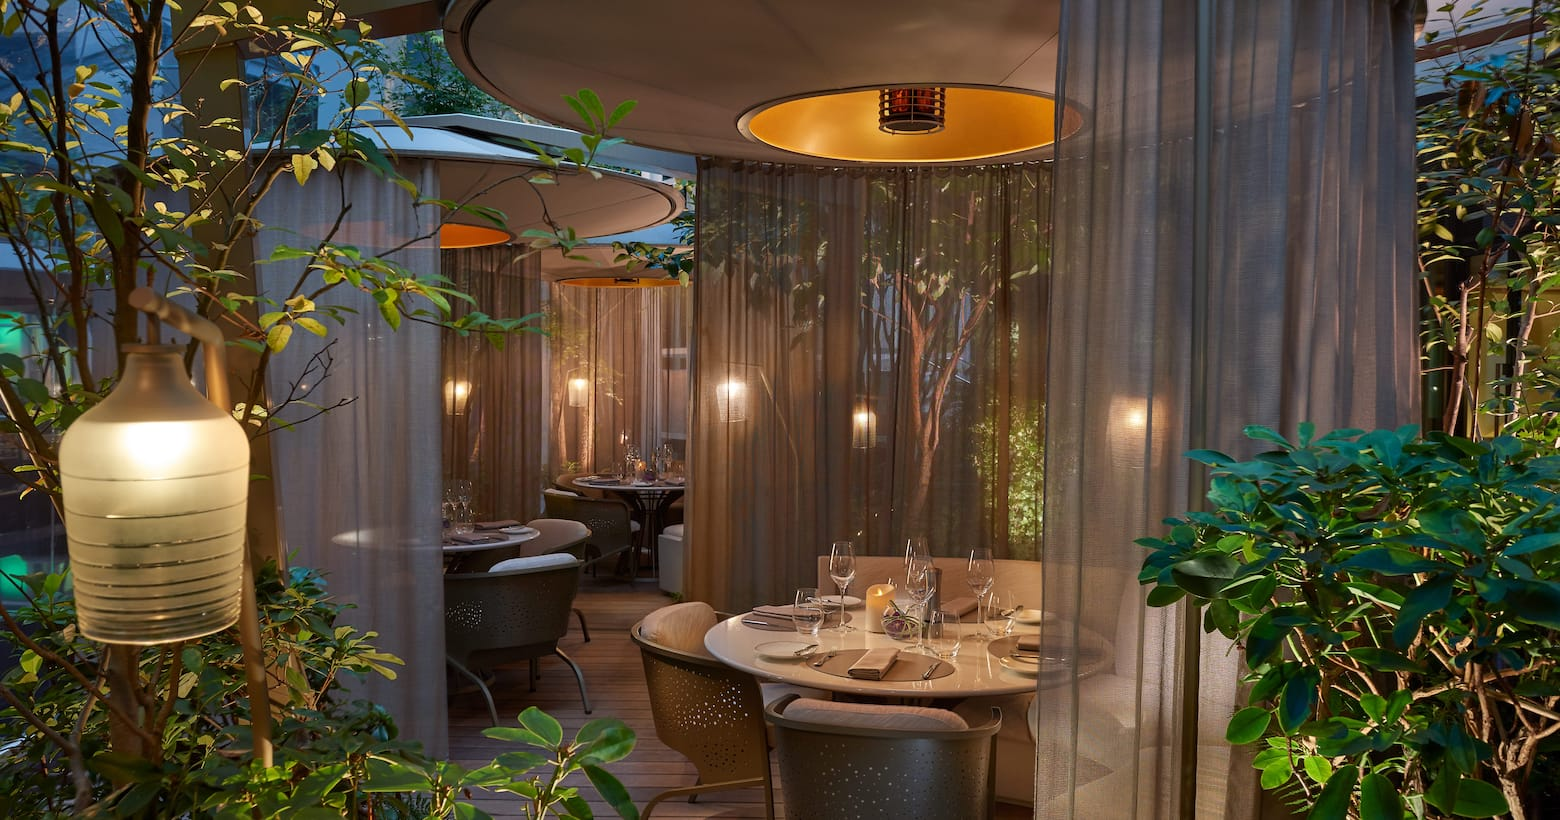 fine dining in paris 5 star restaurants in paris mandarin oriental paris. Black Bedroom Furniture Sets. Home Design Ideas